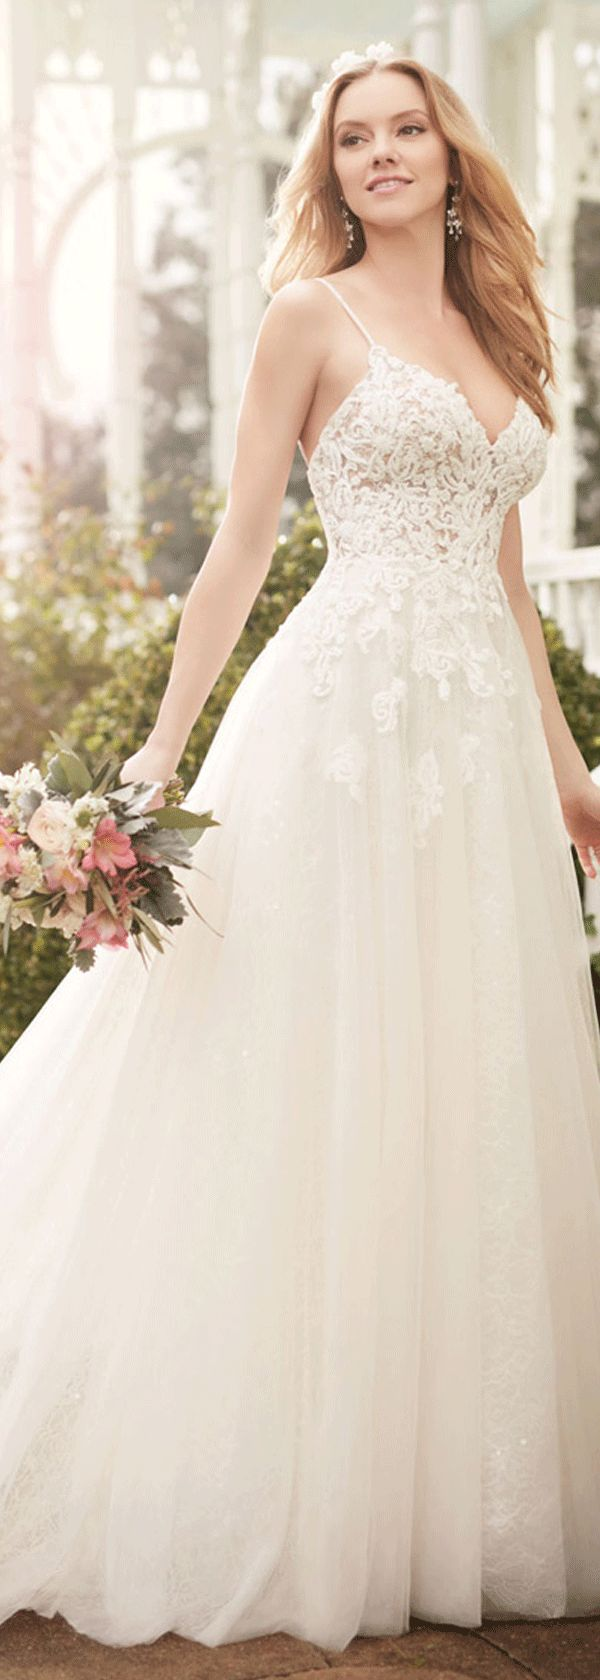 hawaiian wedding dresses hawaiian wedding dress Wonderful Tulle Spaghetti Straps Neckline A line Wedding Dresses With Lace Appliques